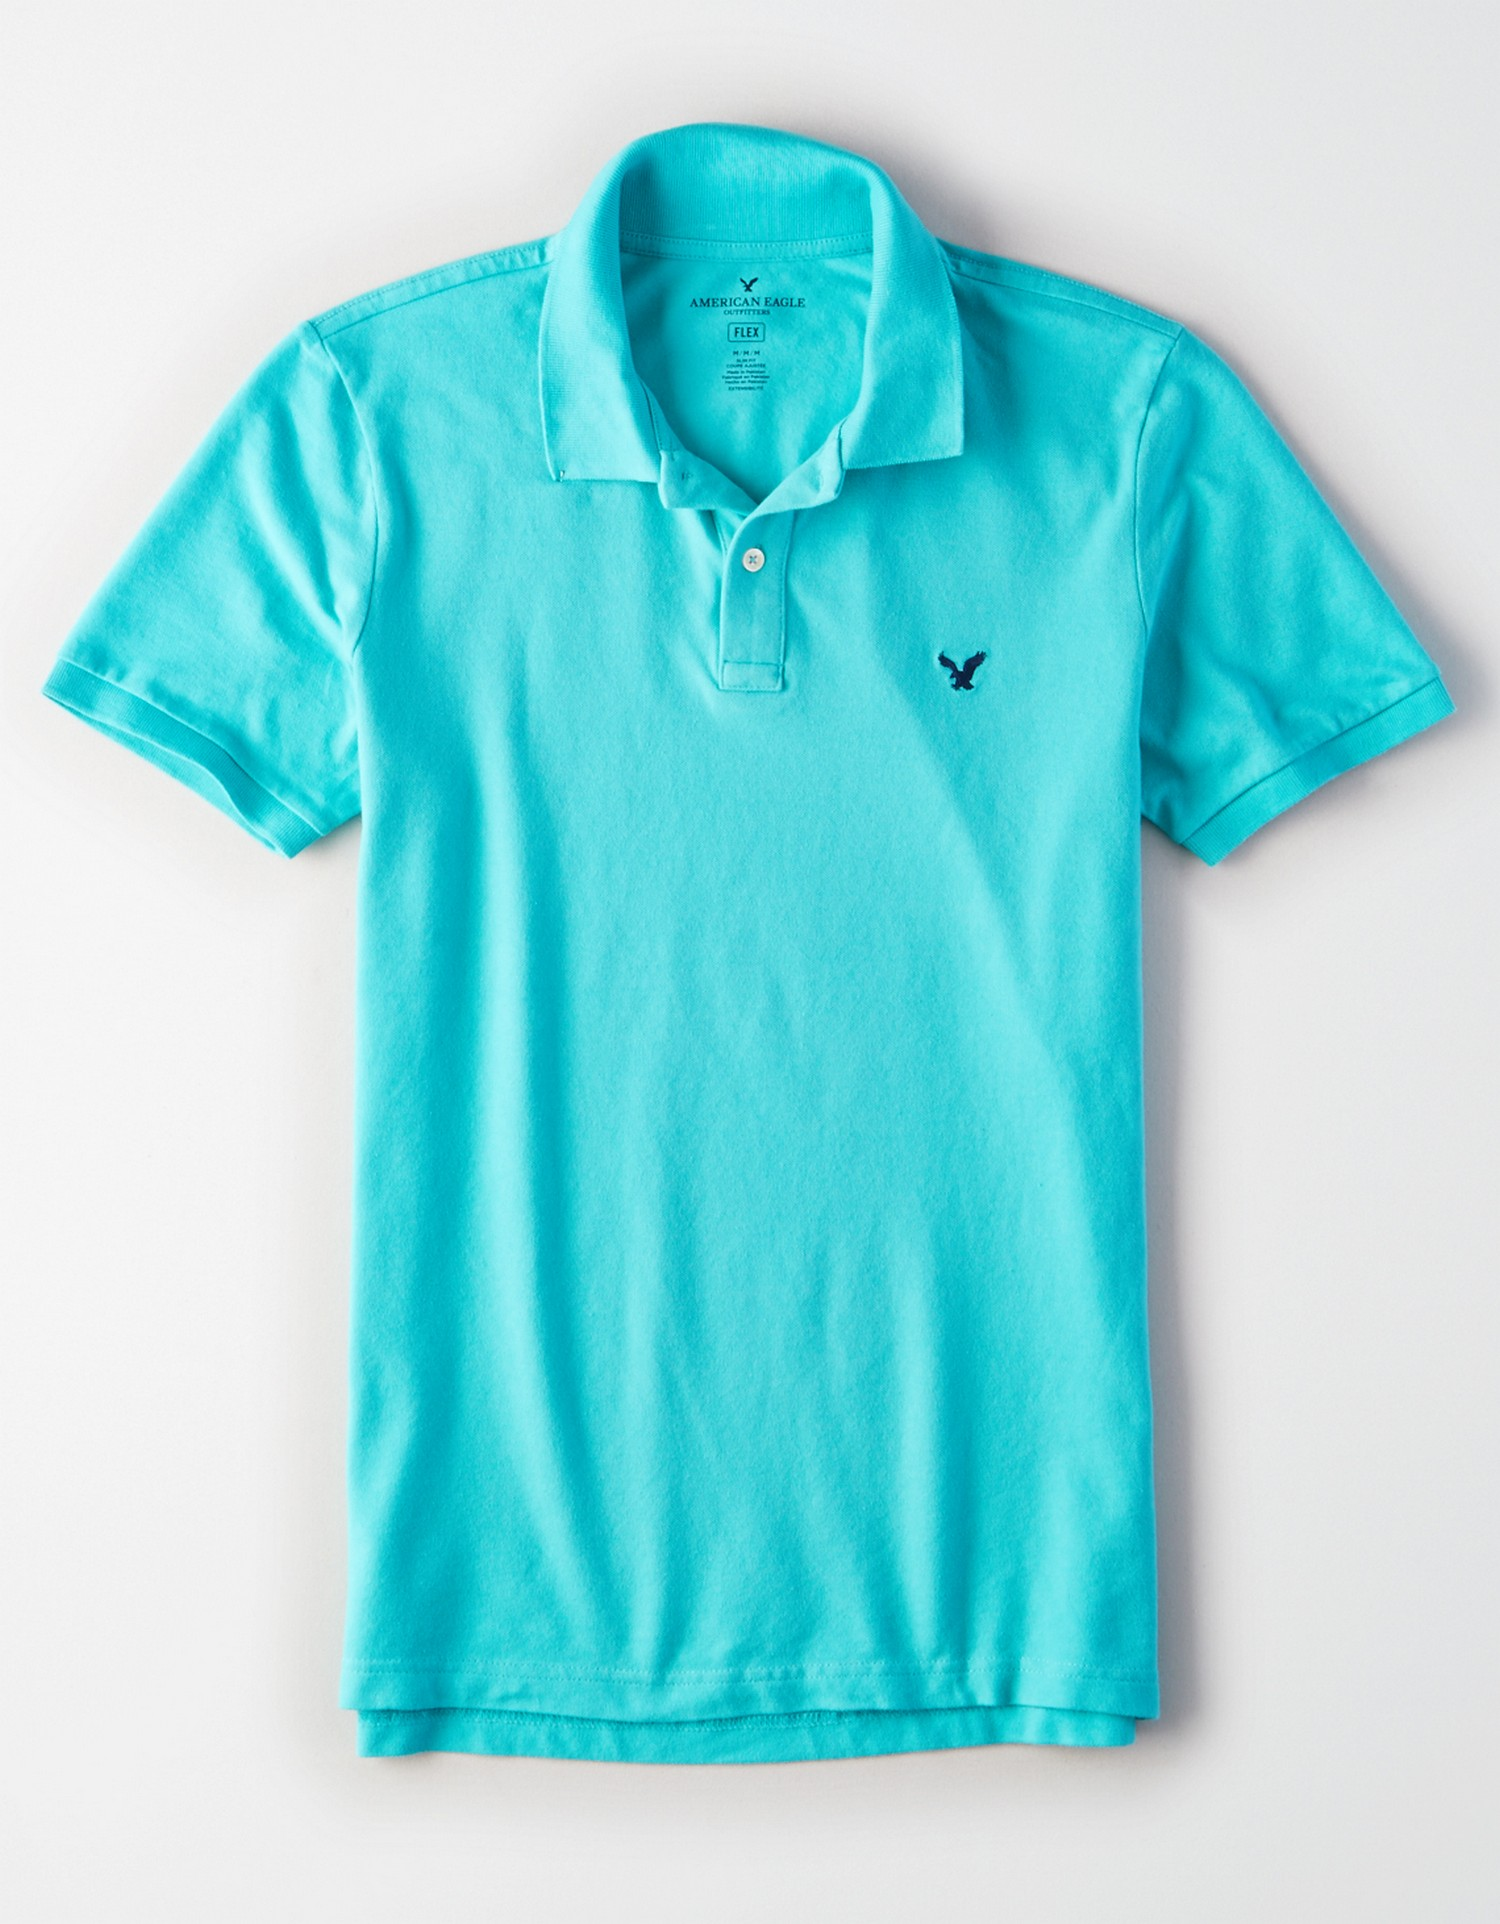 AE - INTL - Apparel - M - Slim Fit Solid Polo - Bright Turquoise - Solid Color - small navy blue embroidered eagle on left chest - light beige buttons AL  *Tracked